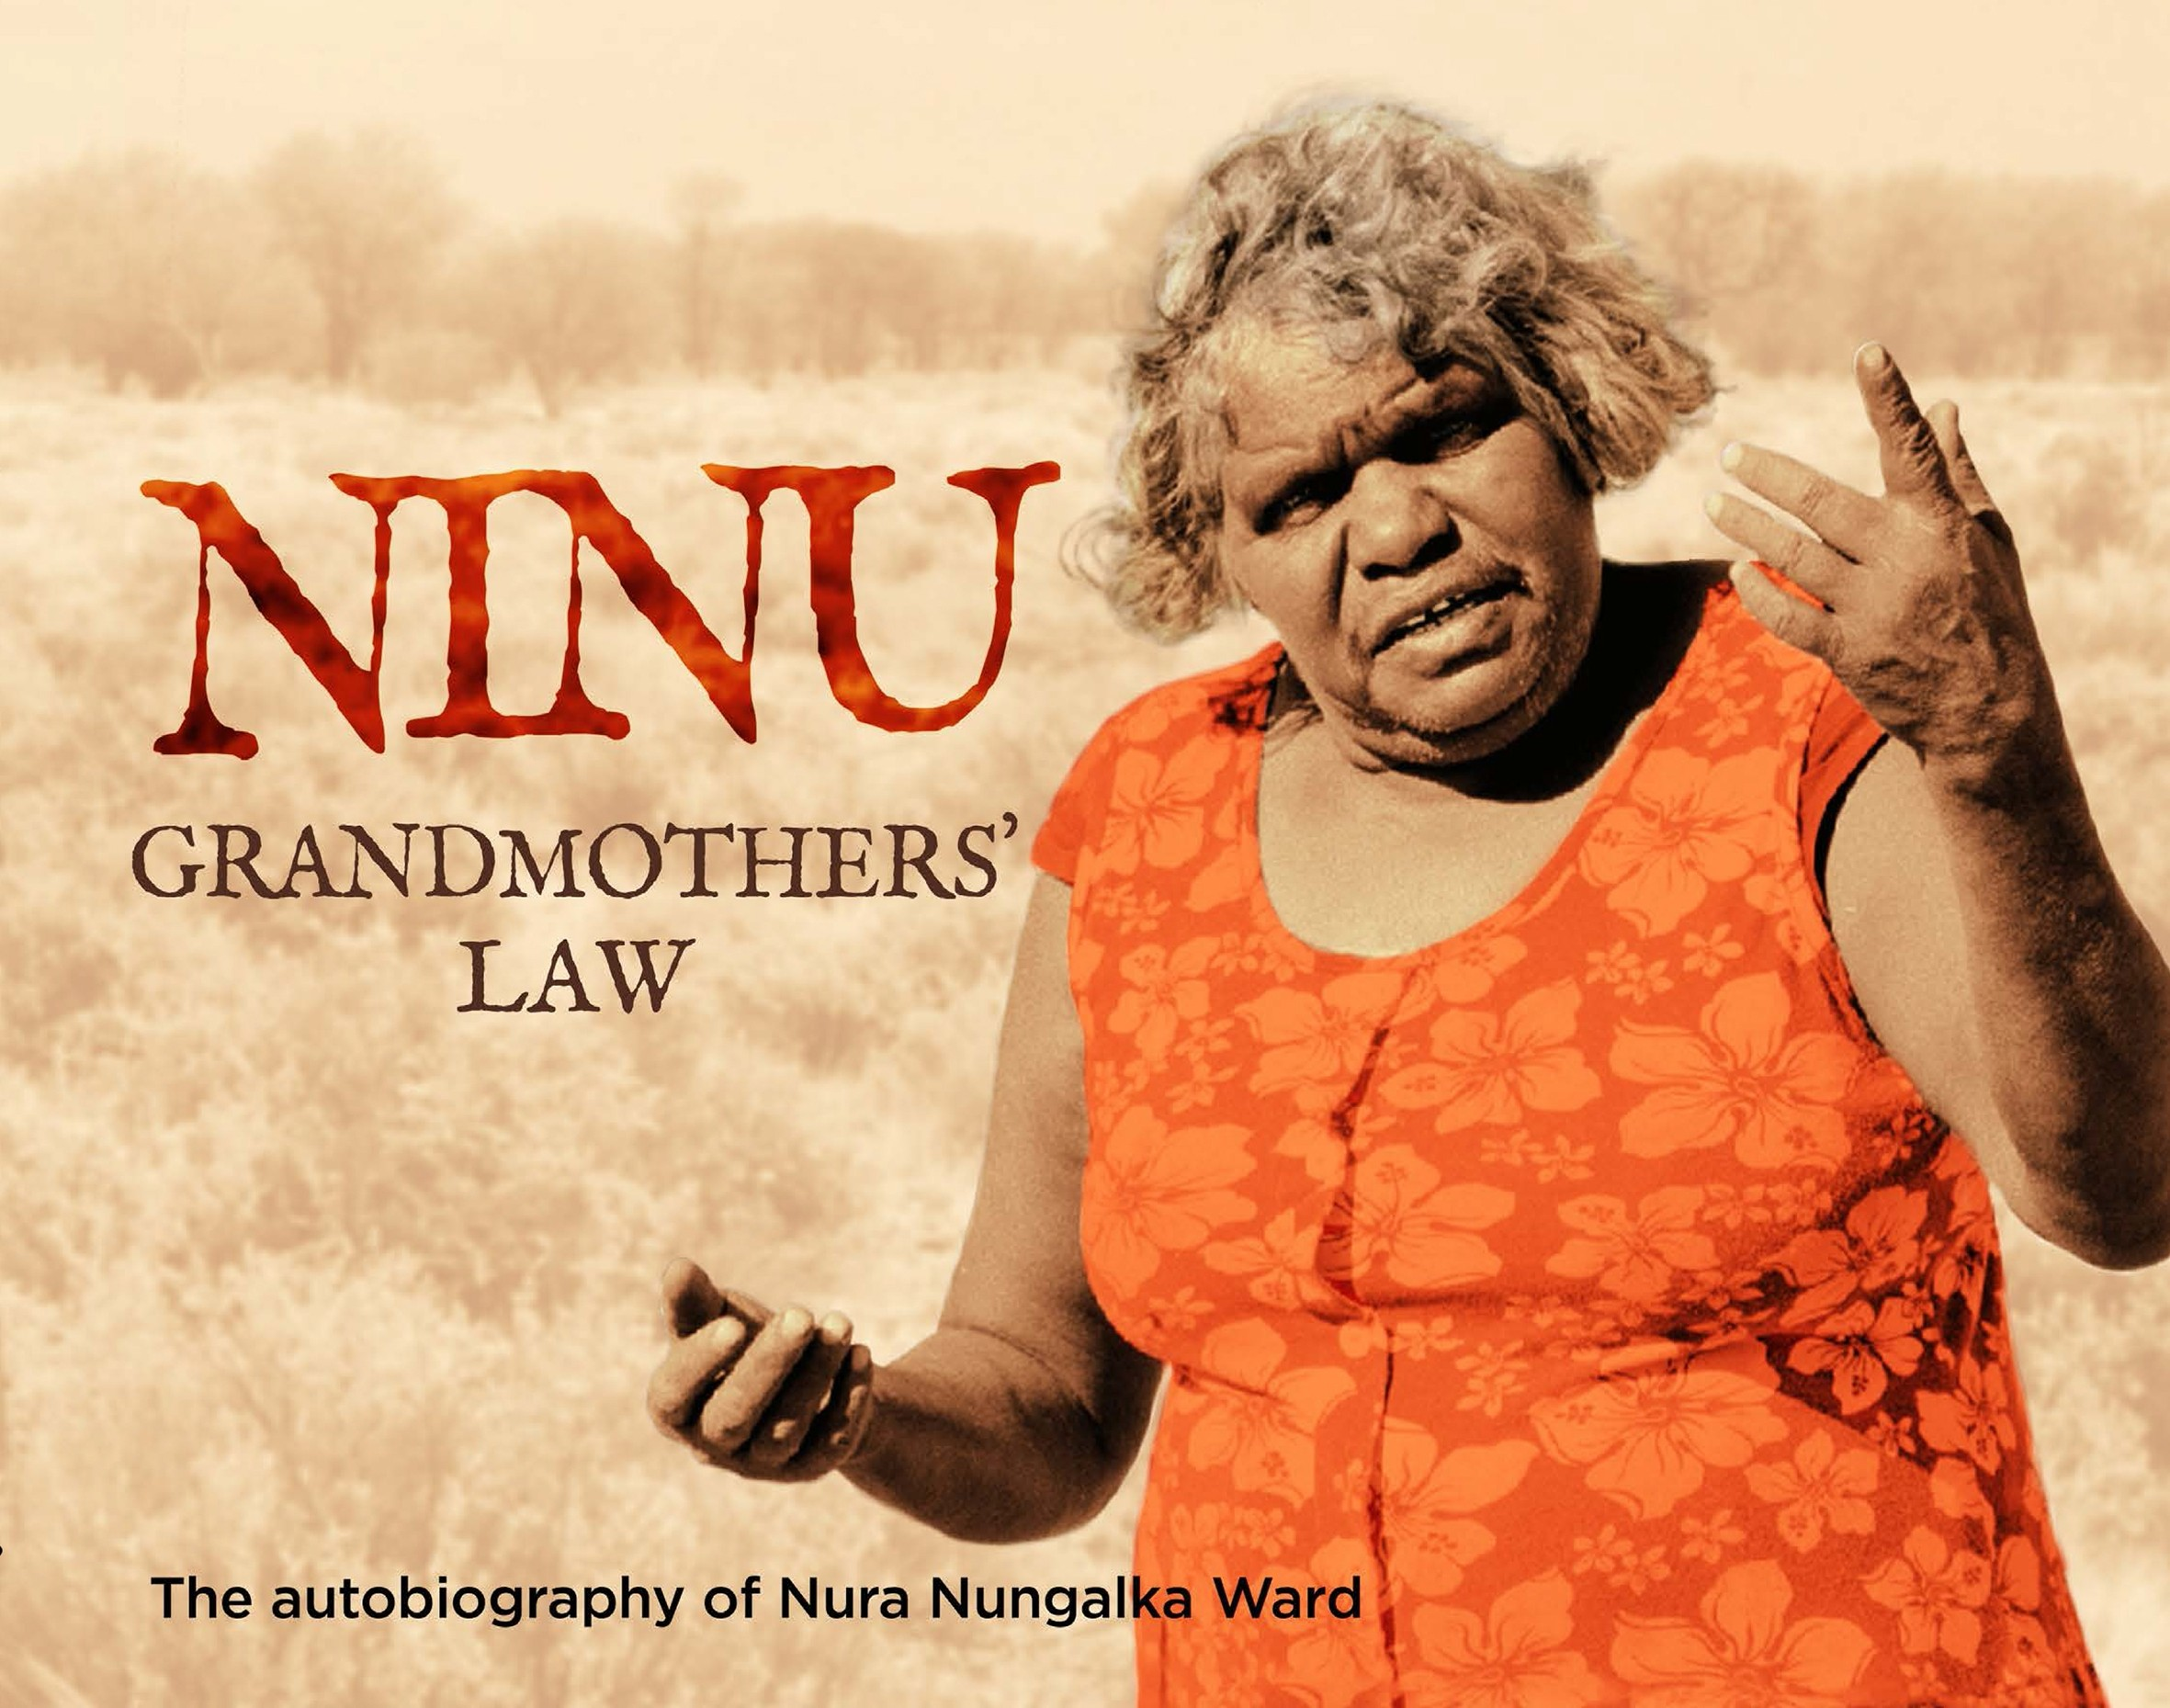 Book bite: Ninu Grandmother's Law: The Autobiography of Nura Nungalka War